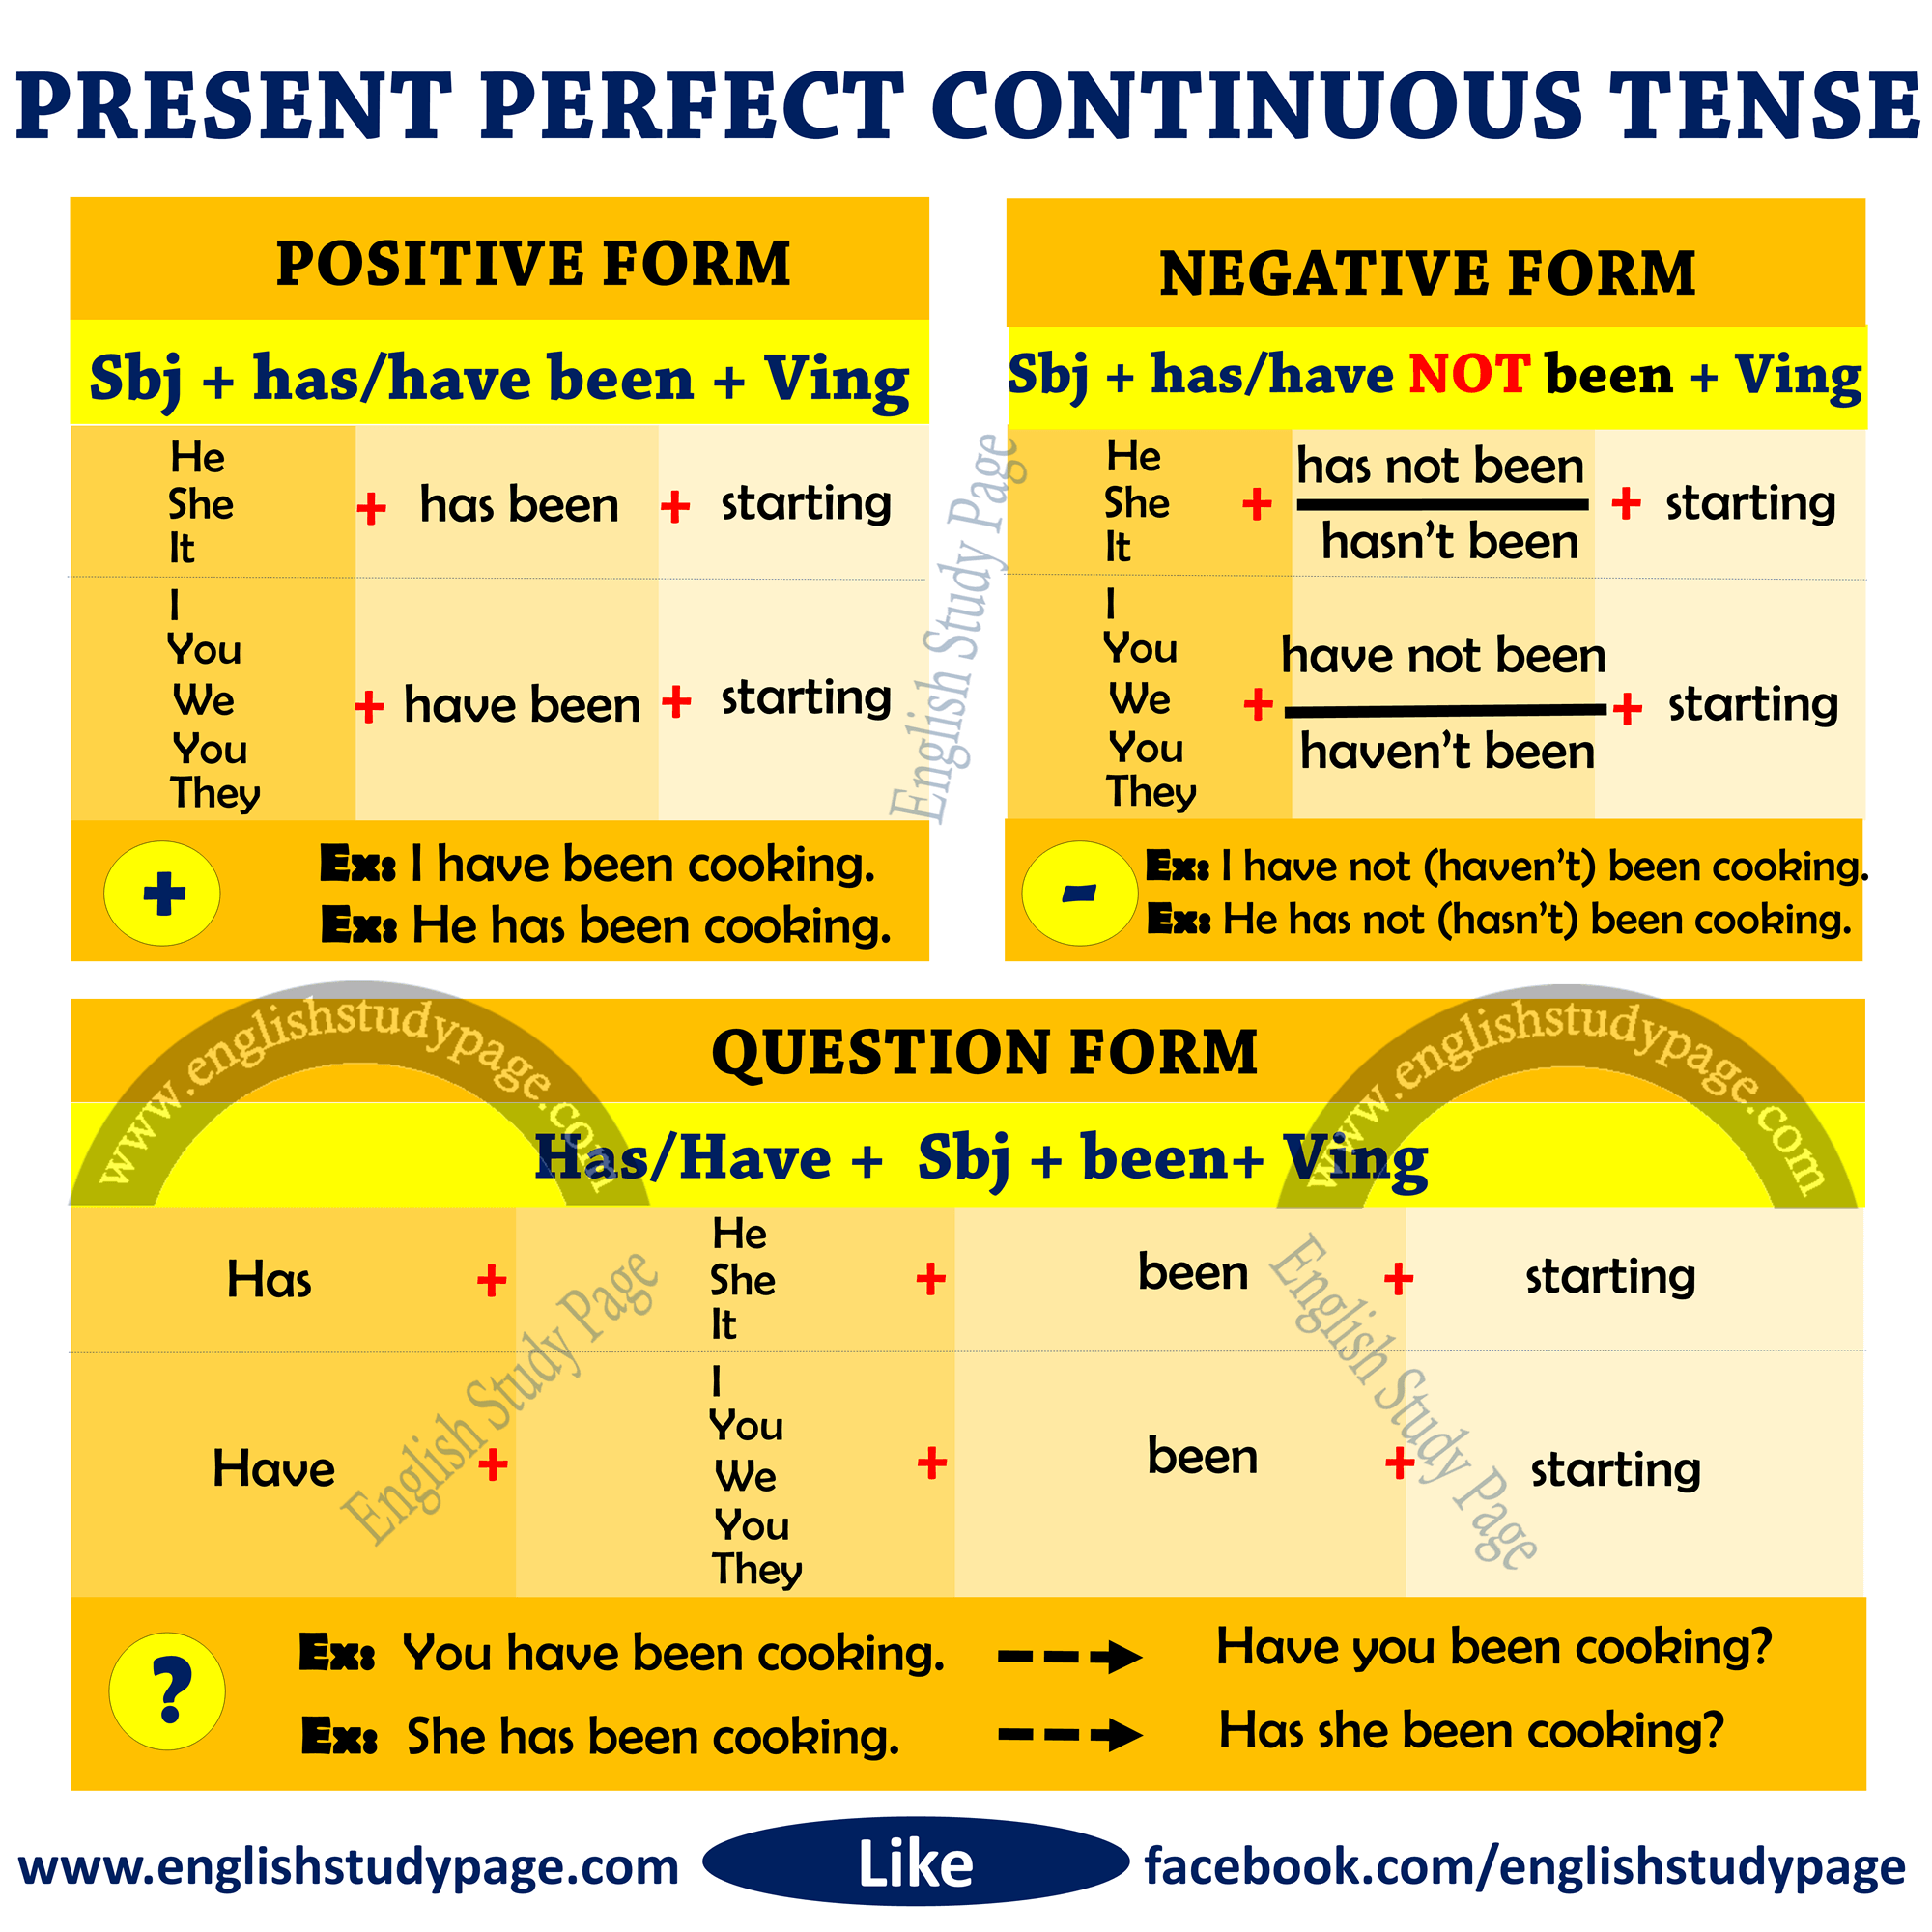 Structure Of Present Perfect Continuous Tense